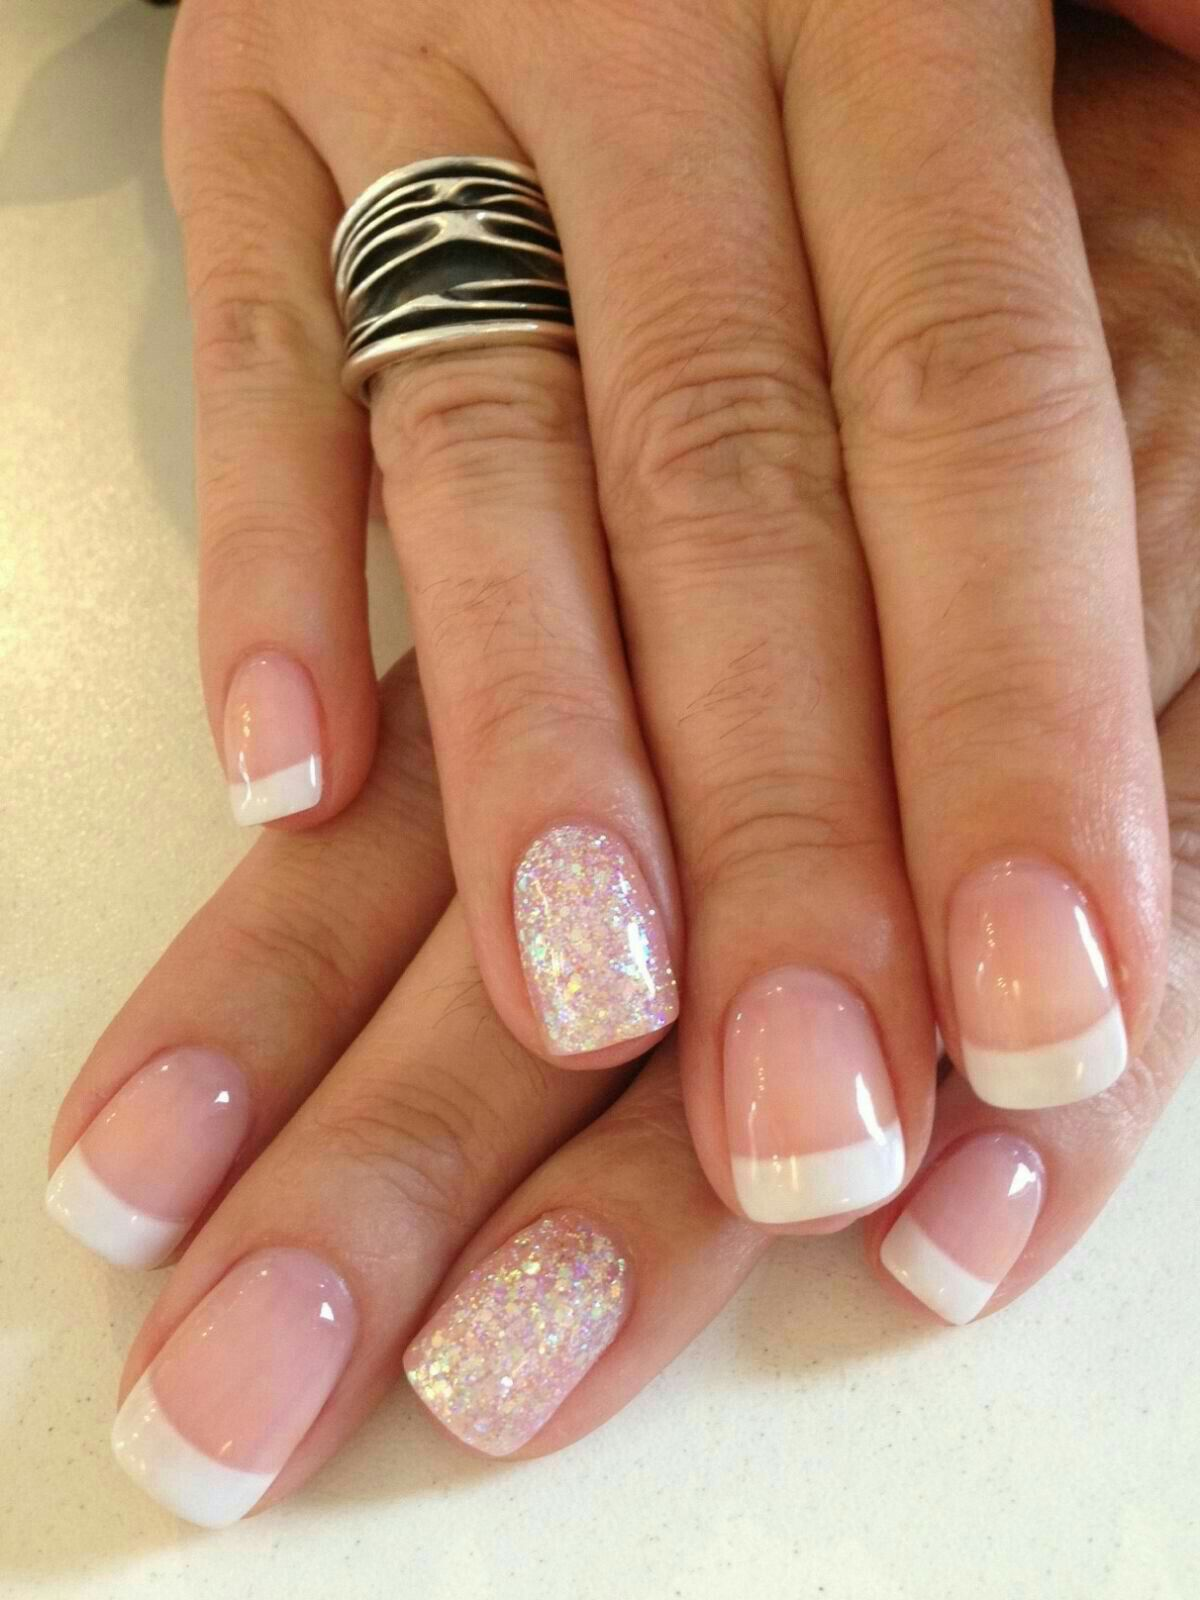 30 Awesome Image Of Lovely And Cute Wedding Pedicure Ideas To